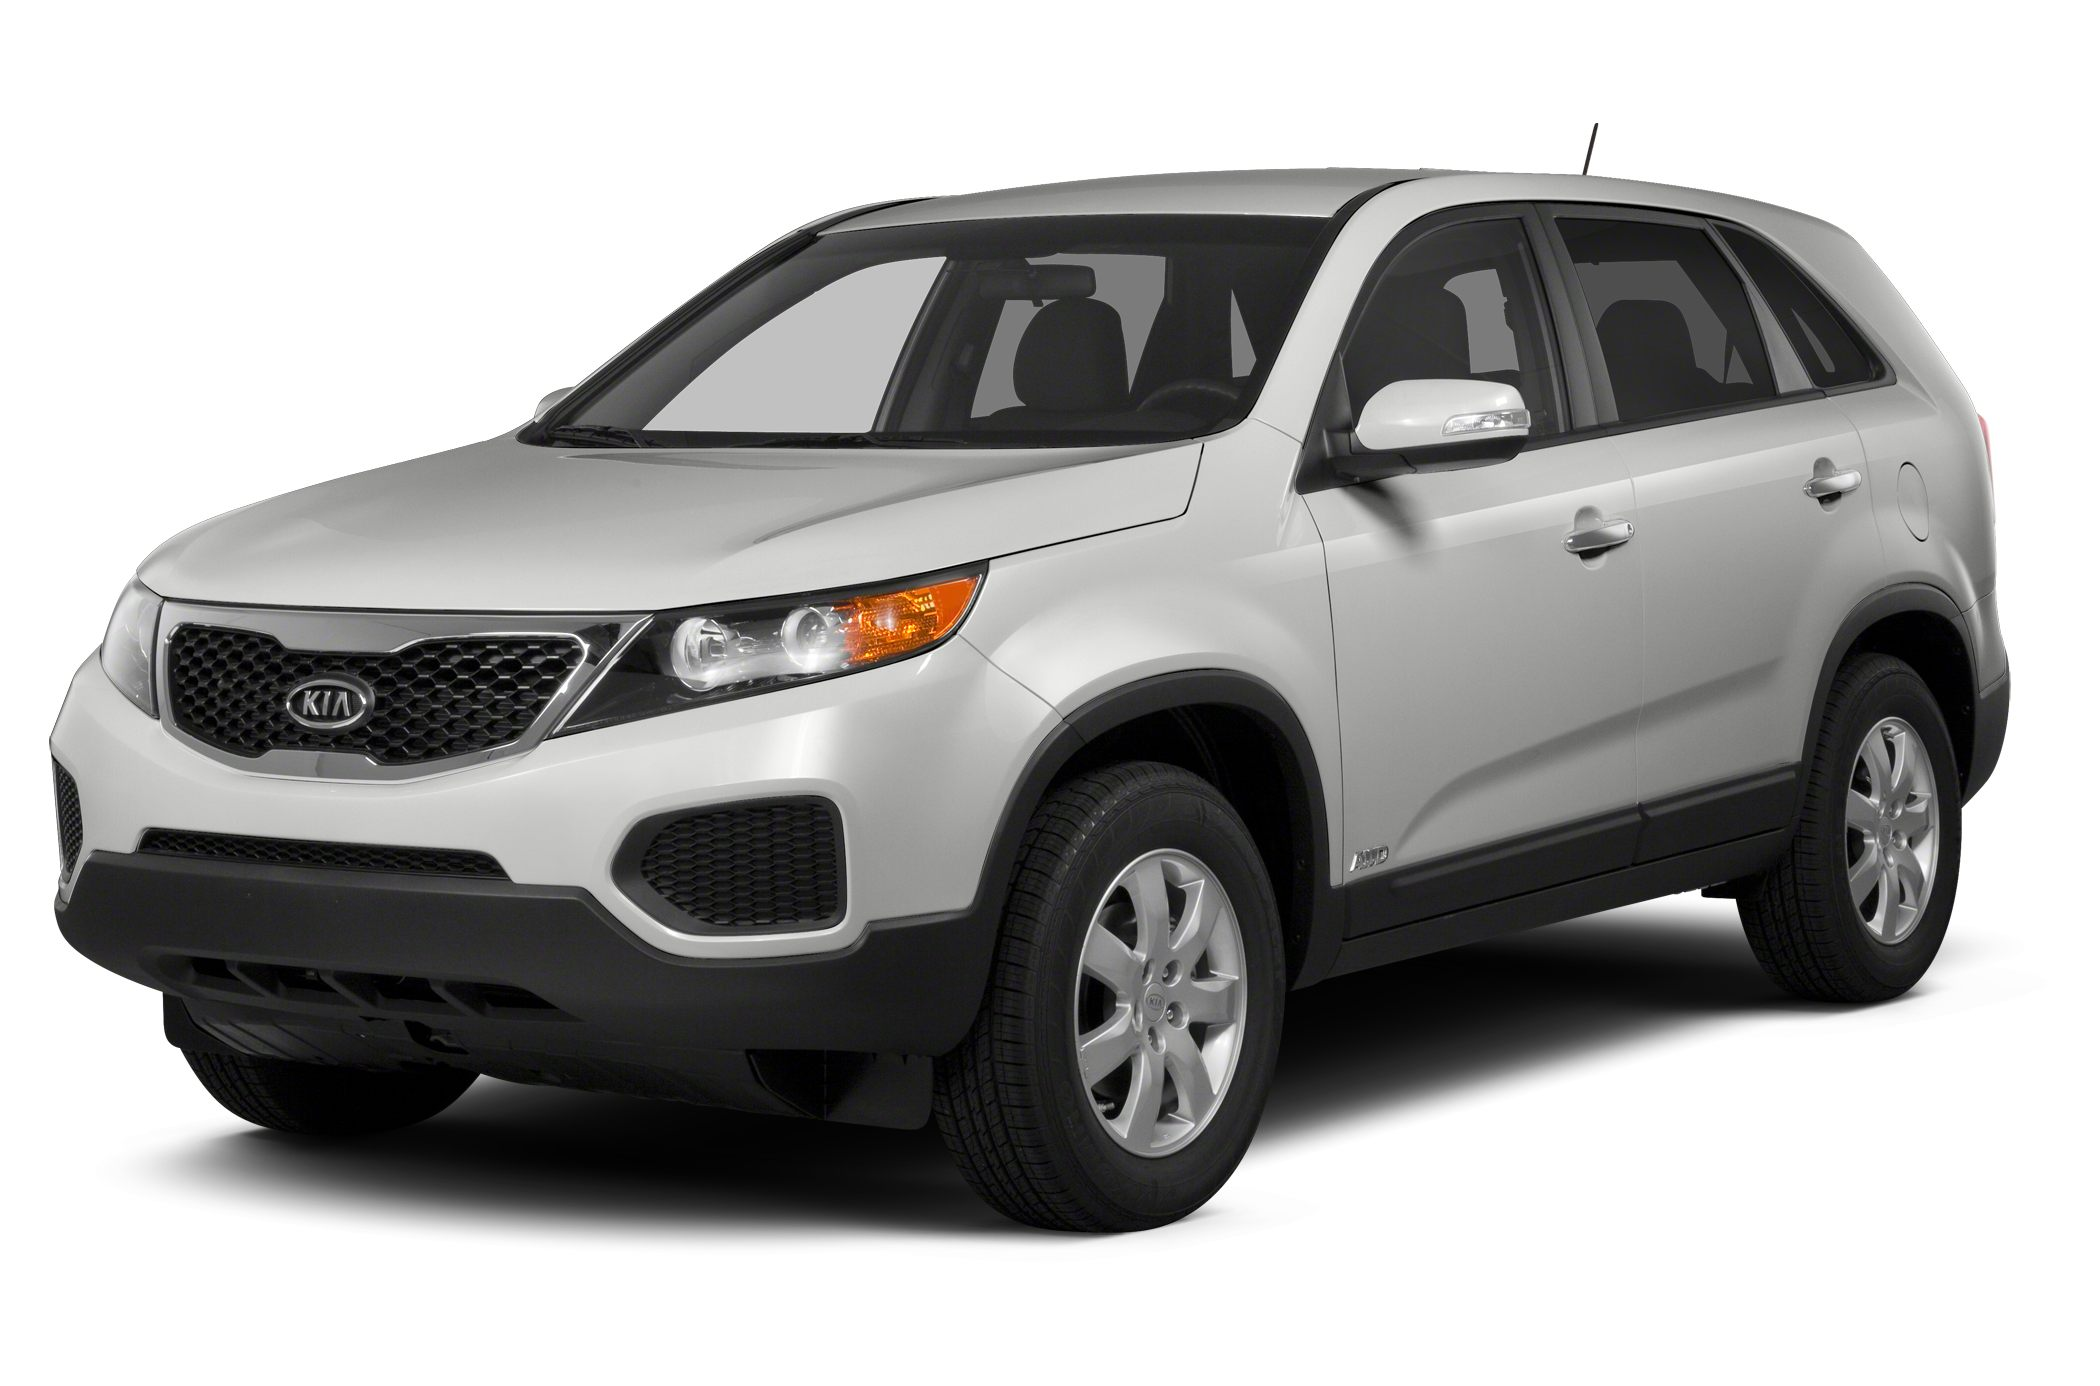 2011 Kia Sorento EX SUV for sale in Birmingham for $15,755 with 54,720 miles